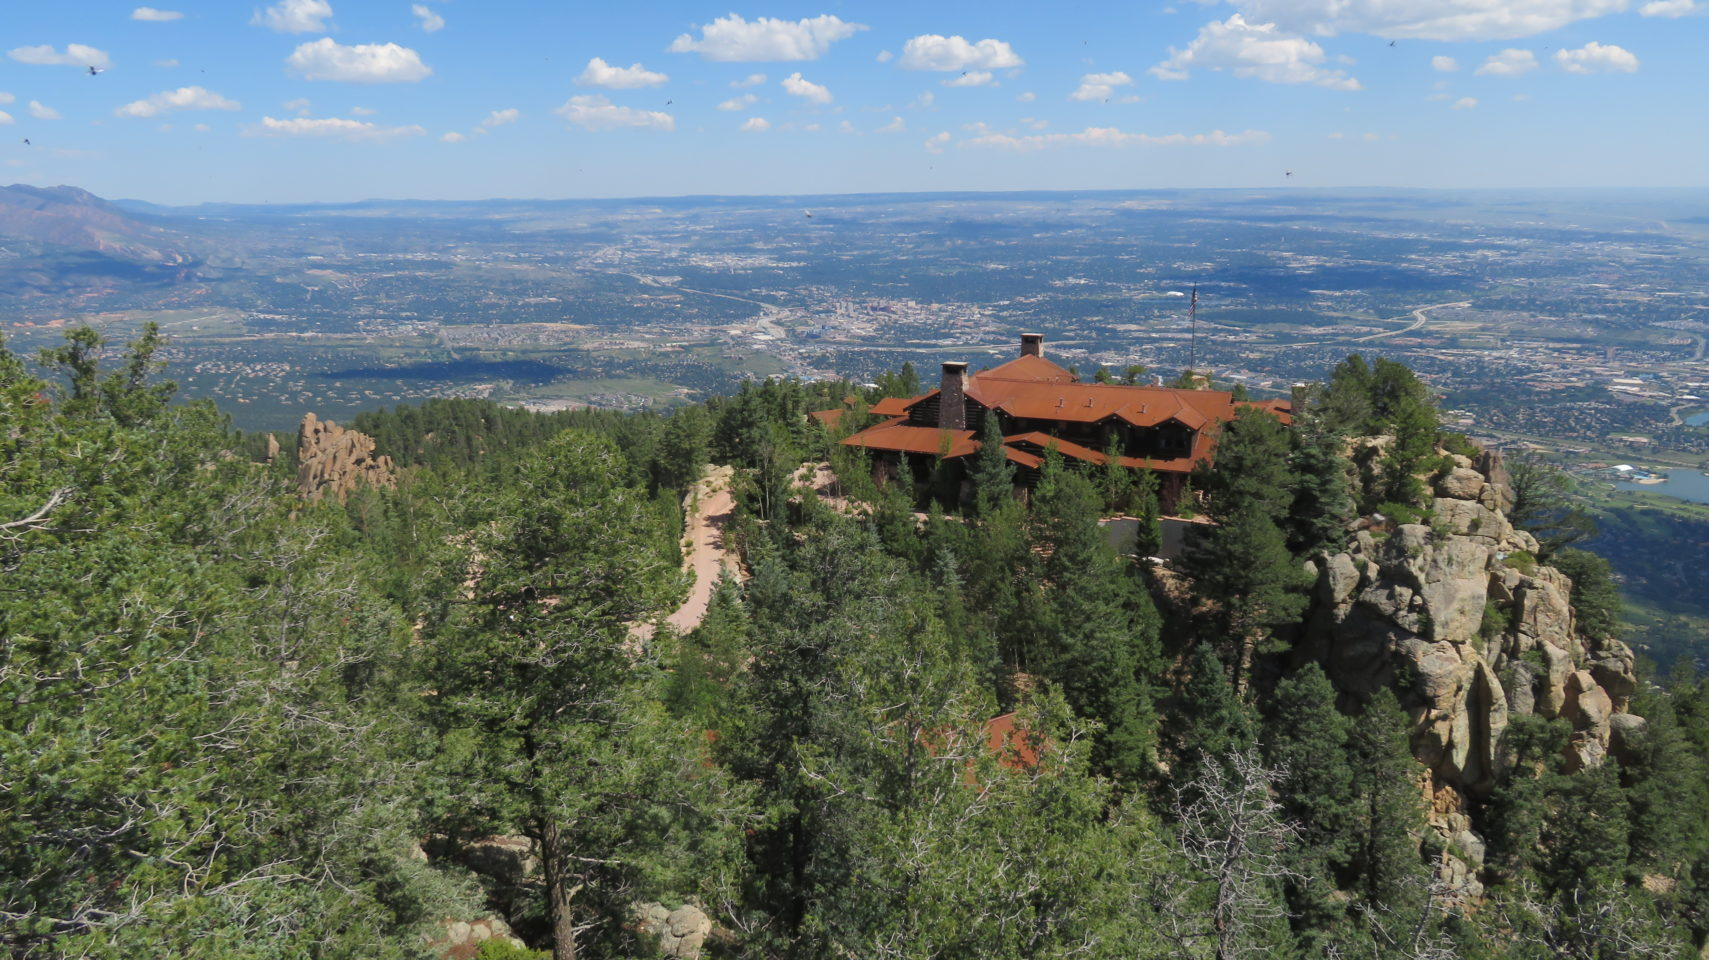 Cloud Camp, 3,000 feet above the main campus of The Broadmoor Resort & Spa